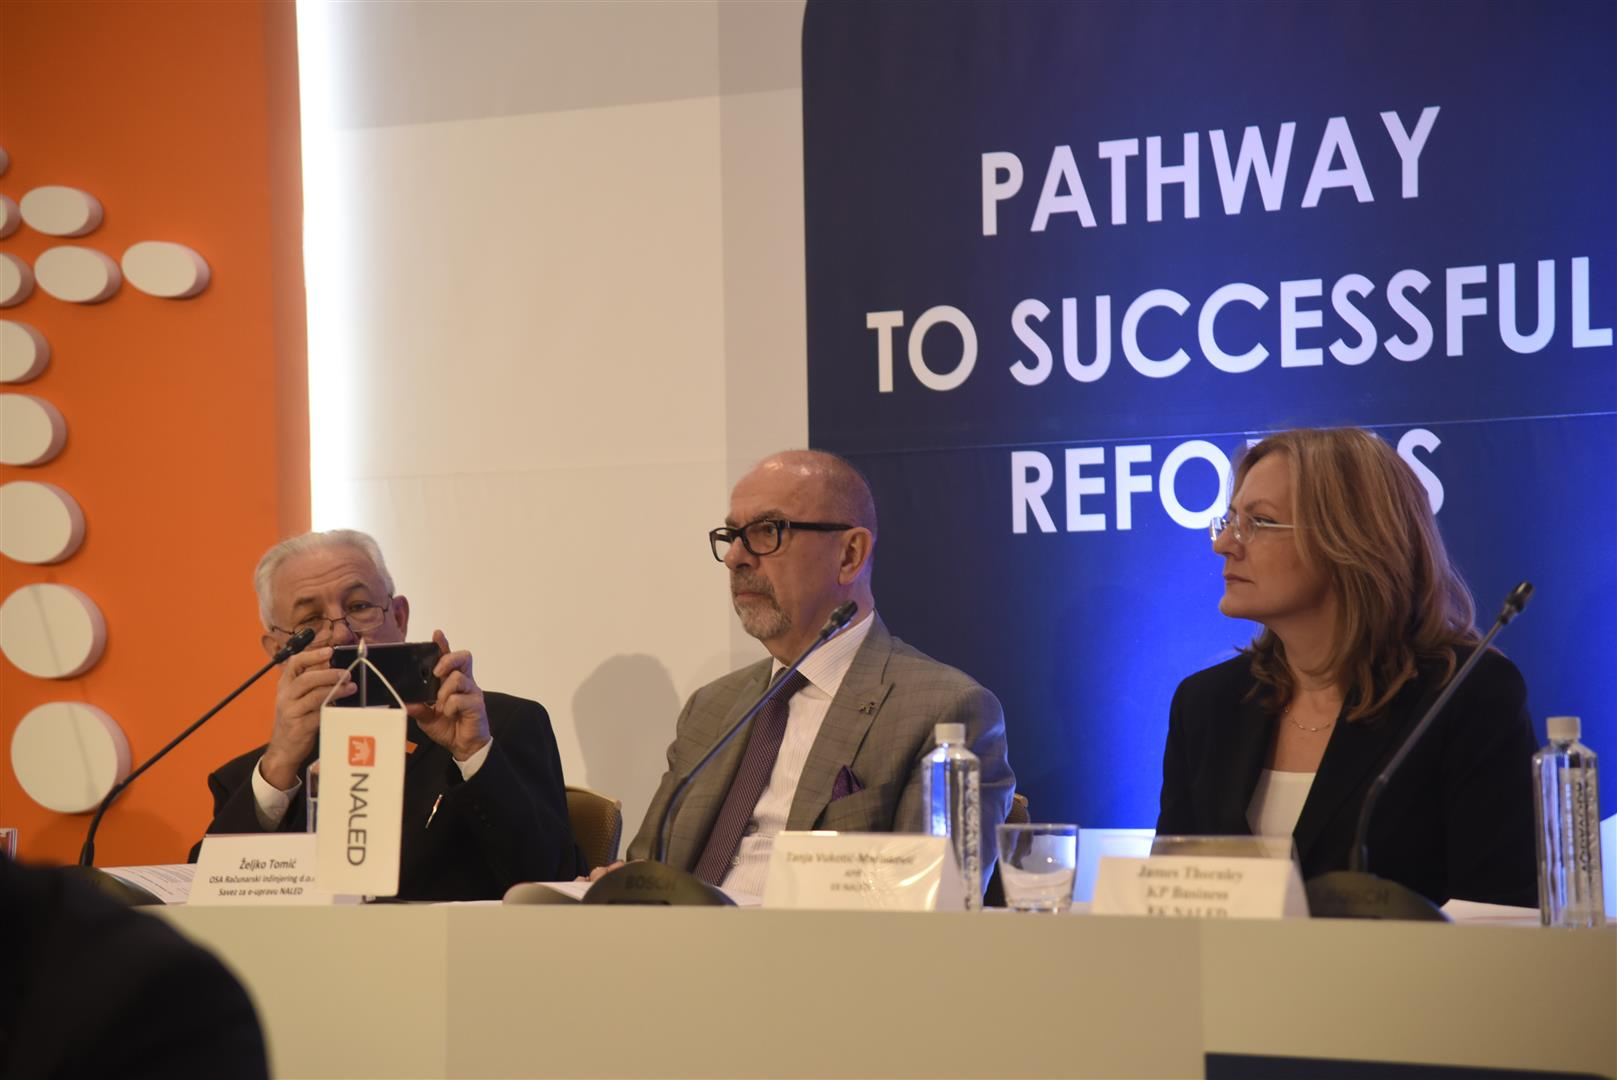 The path of successful reforms starts from businesses and local governments